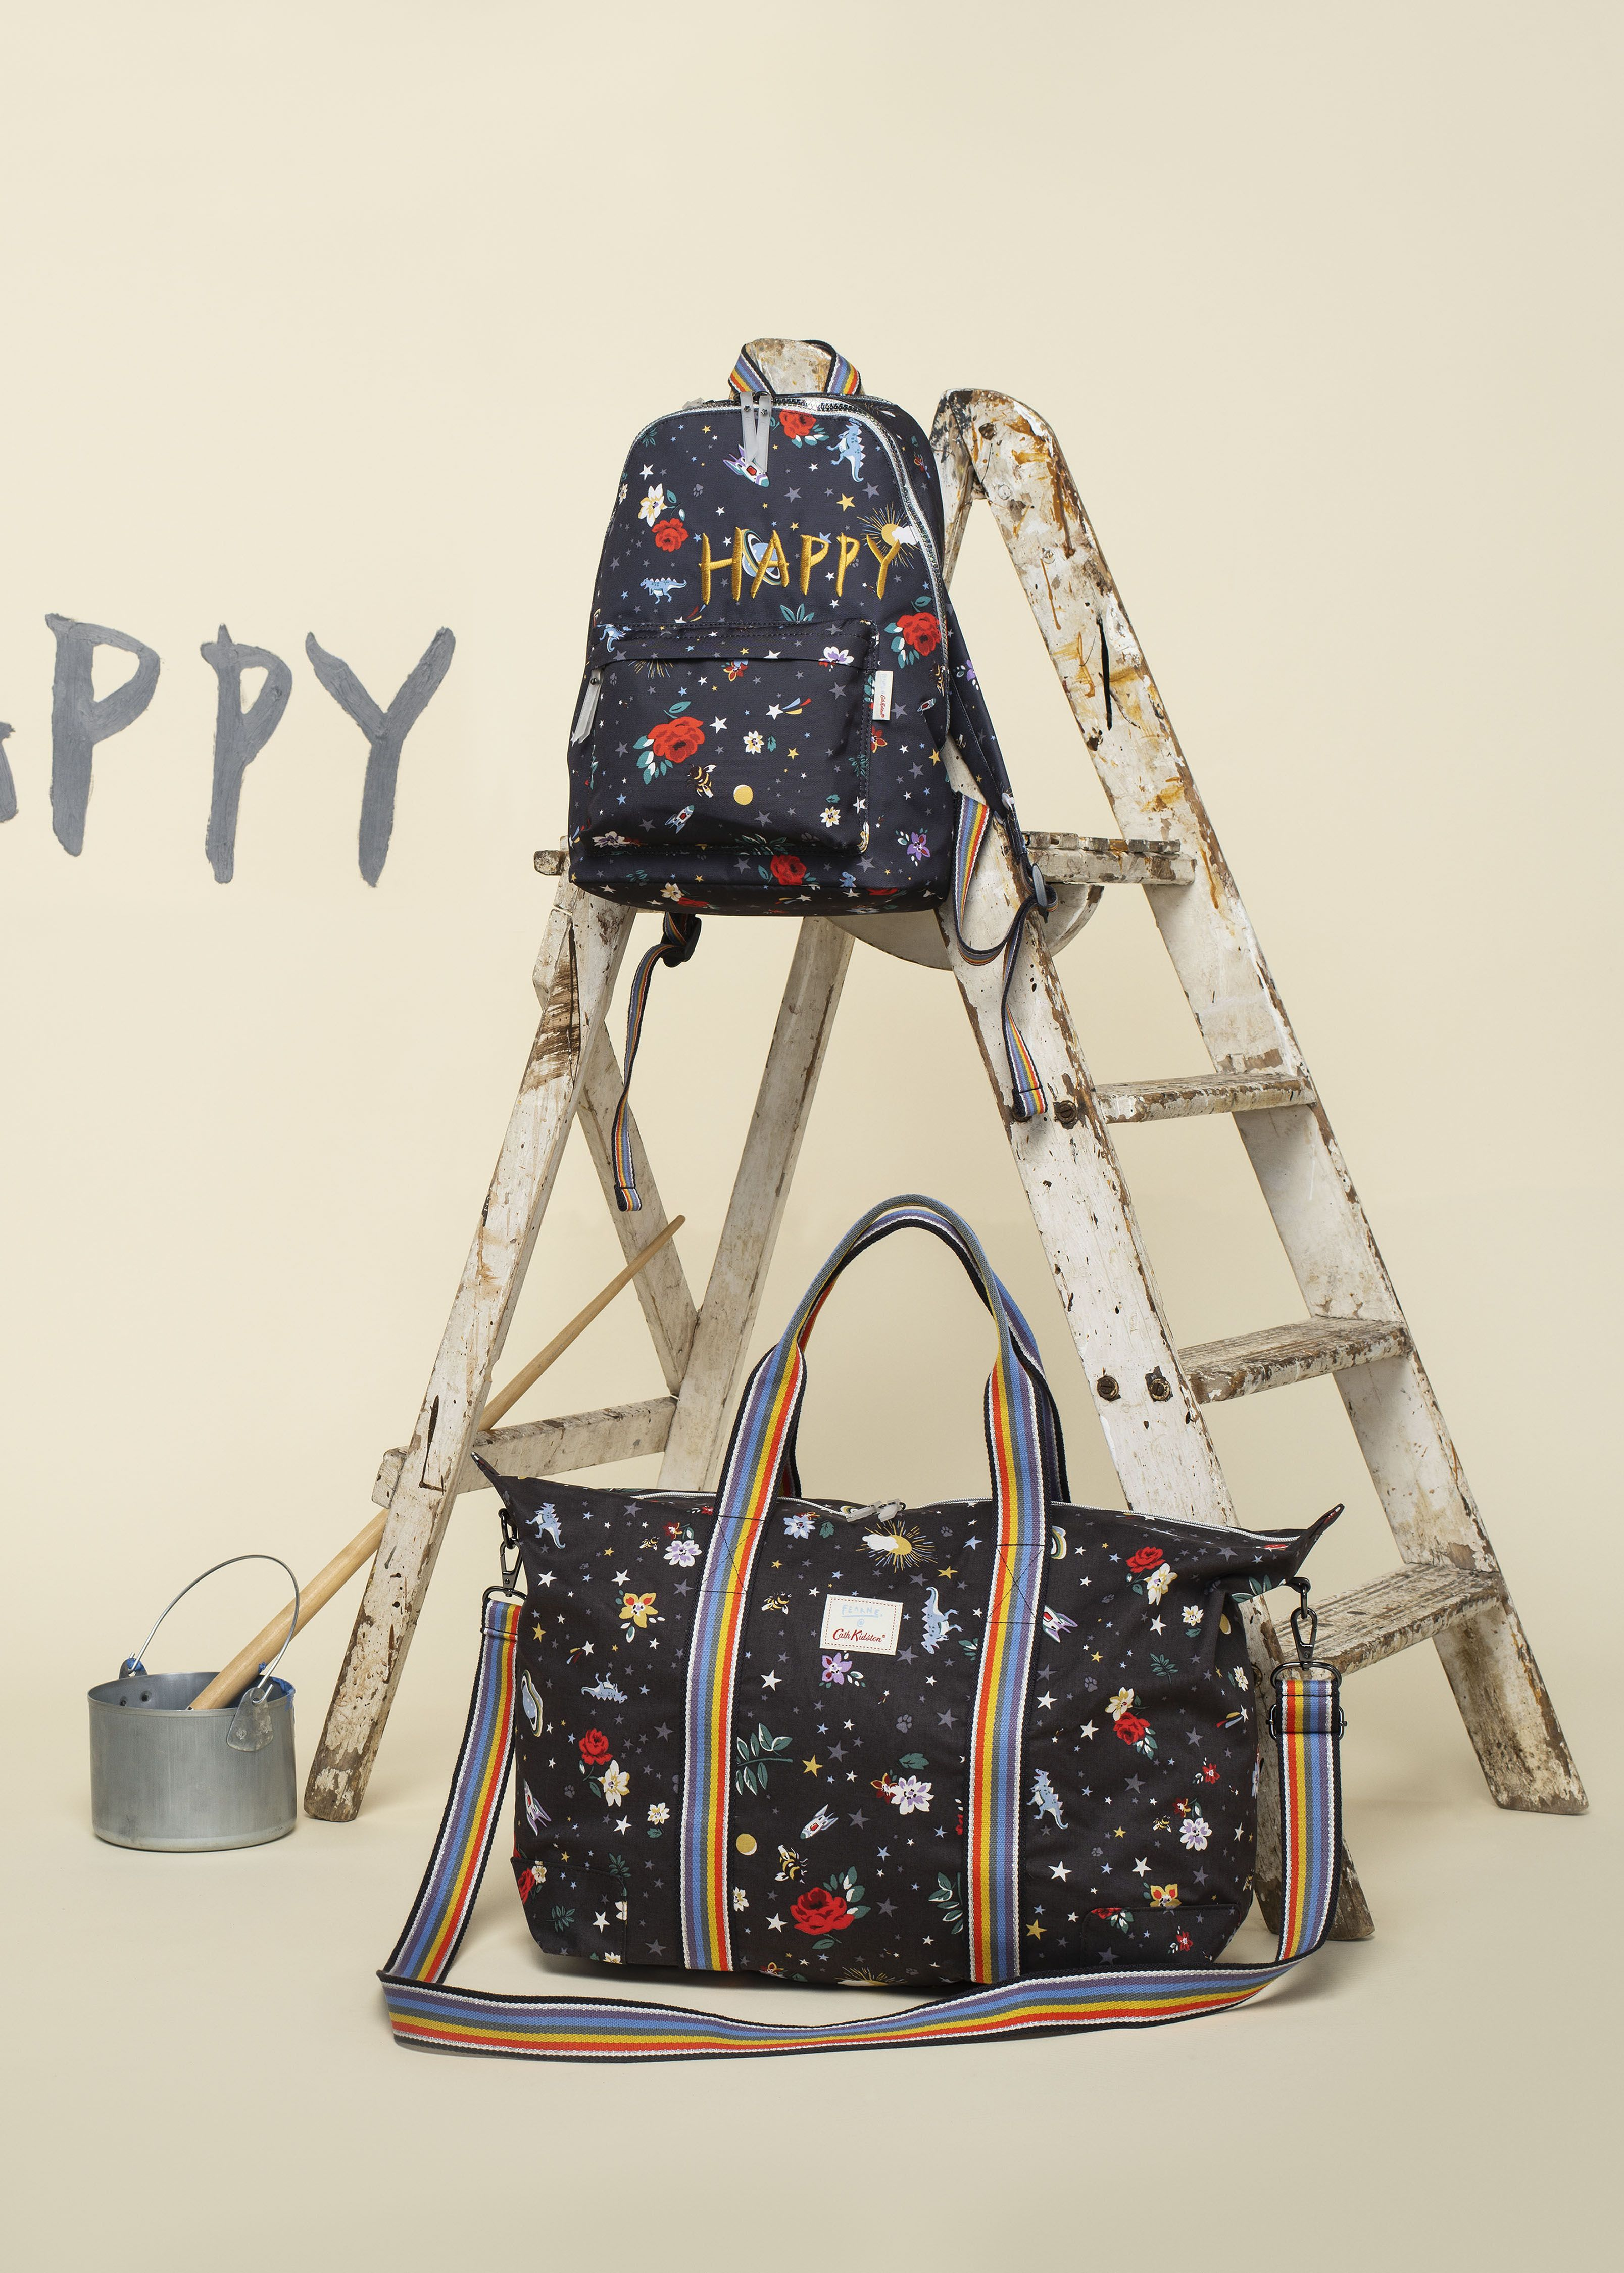 51dedf1fc2 Our Fearne   Cath Kidston range has launched! Get your hands on the brand  new